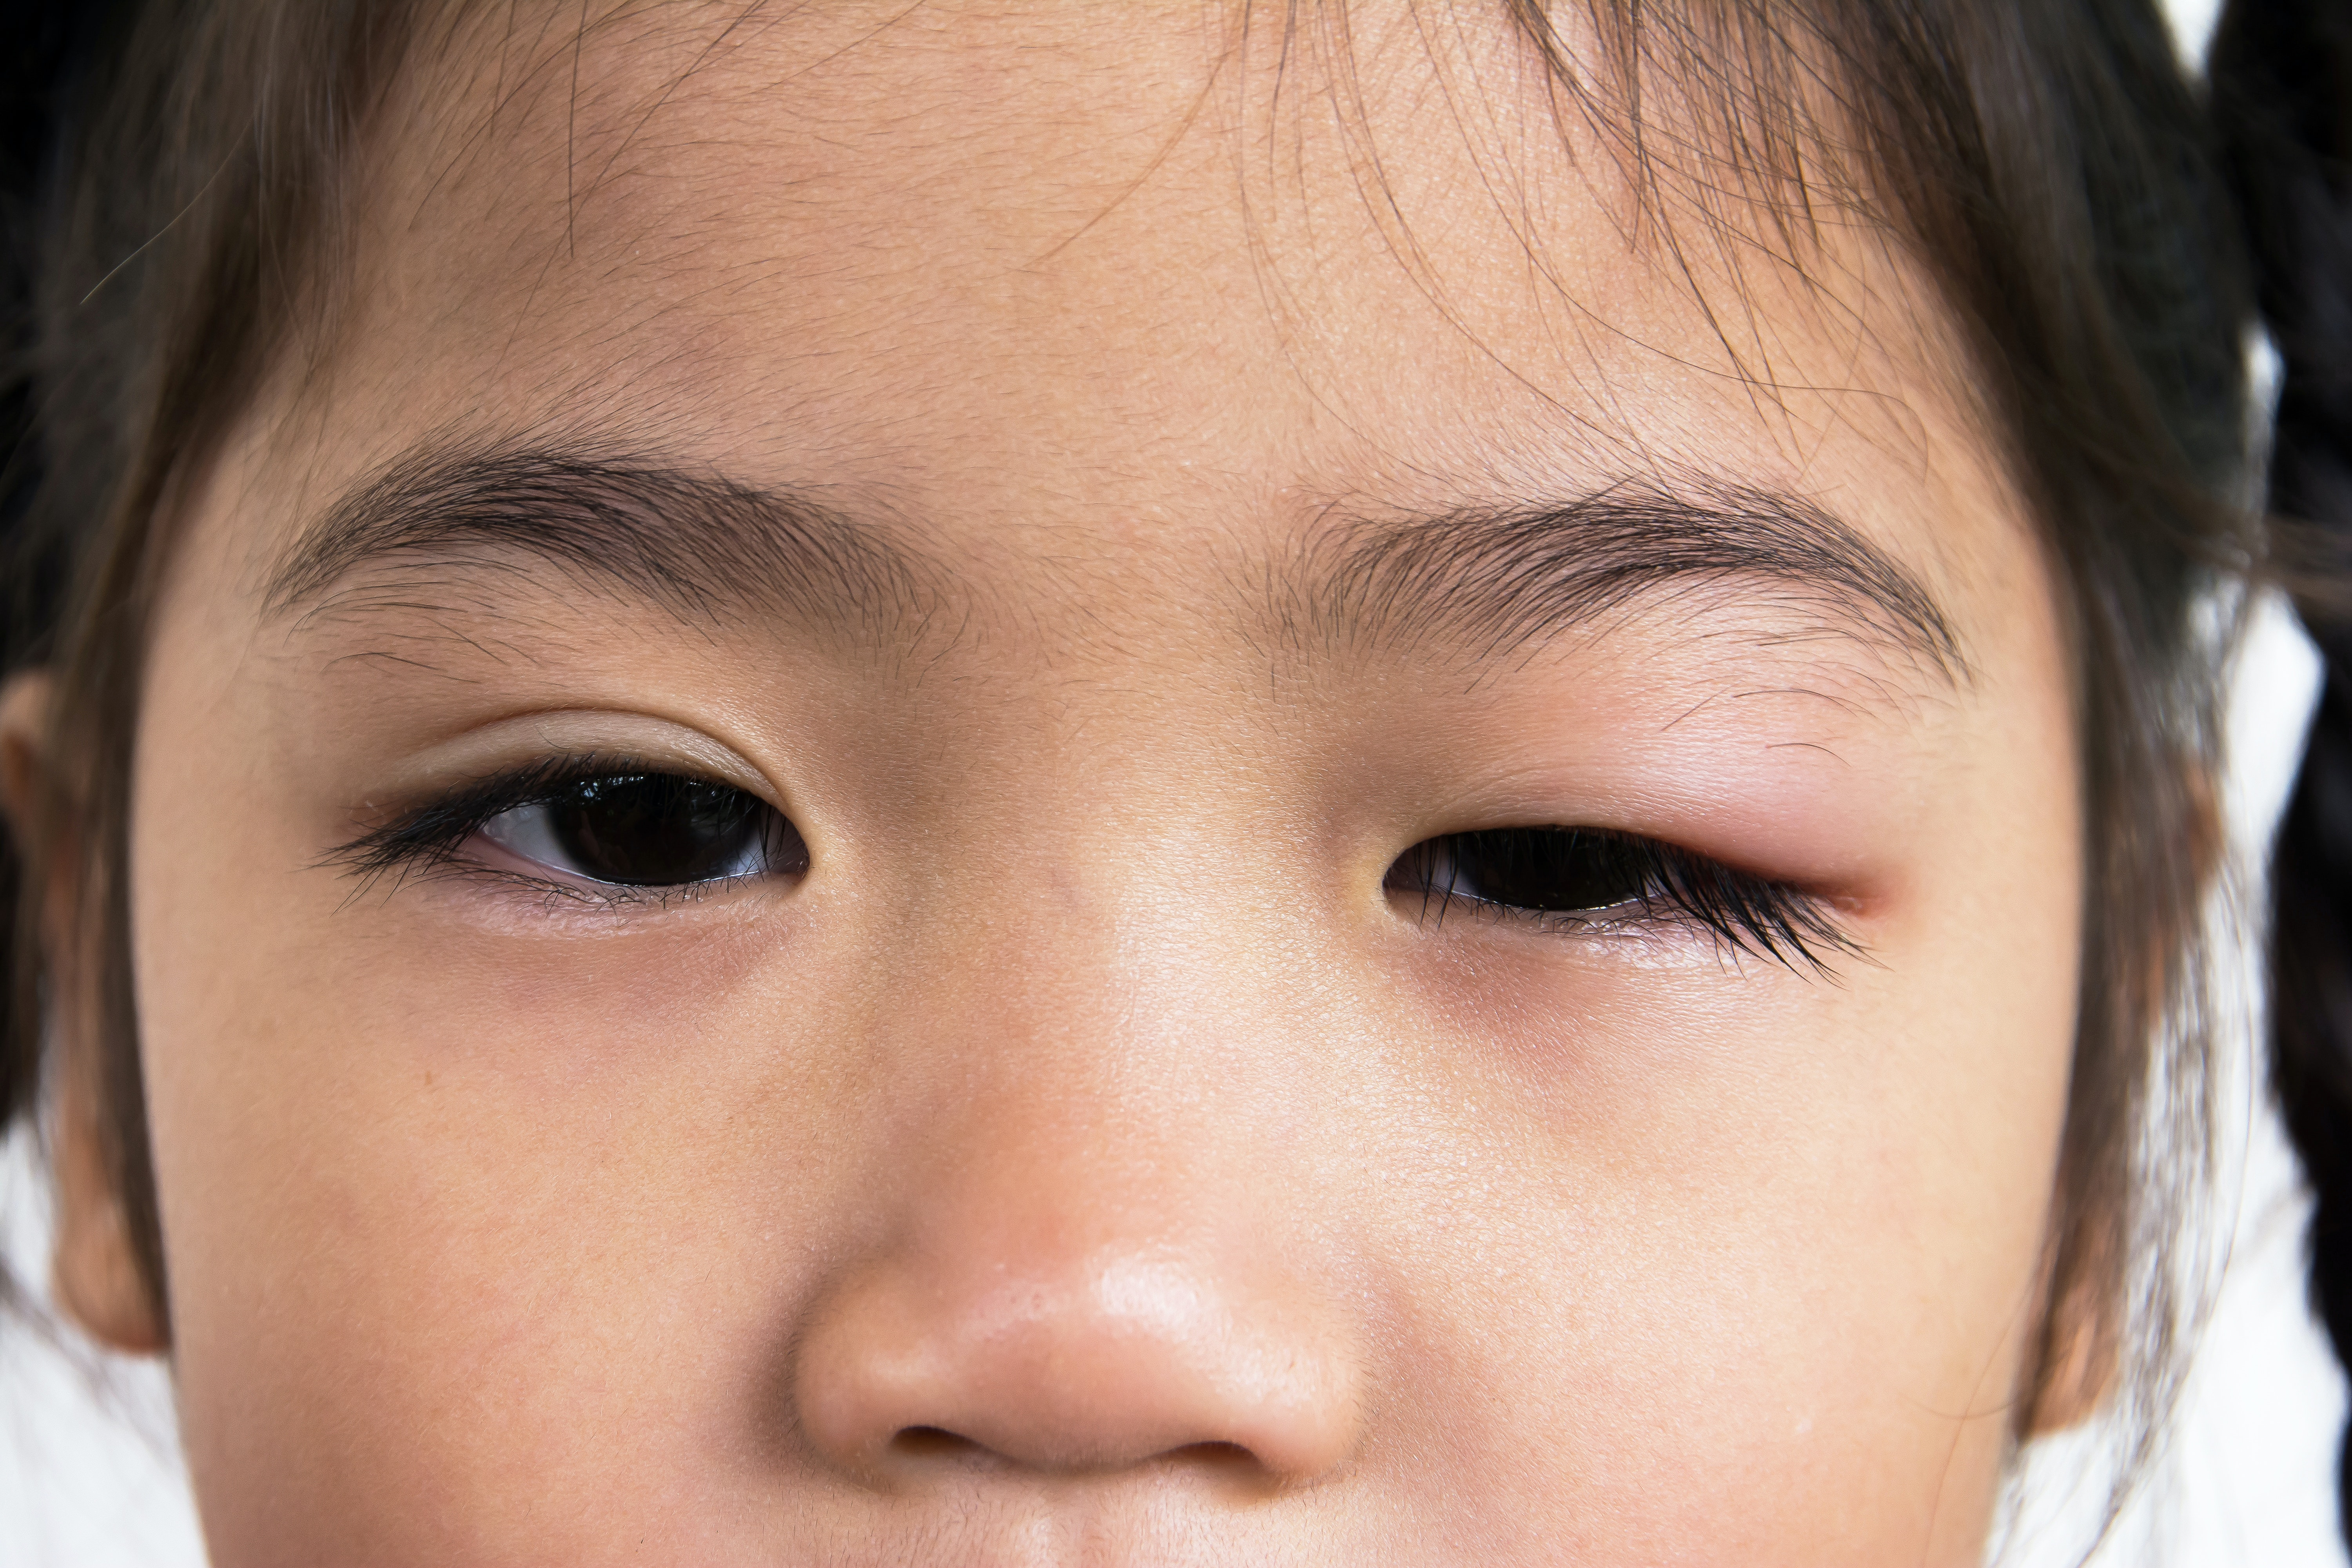 An image depicting a person suffering from swelling of one eyelid symptoms